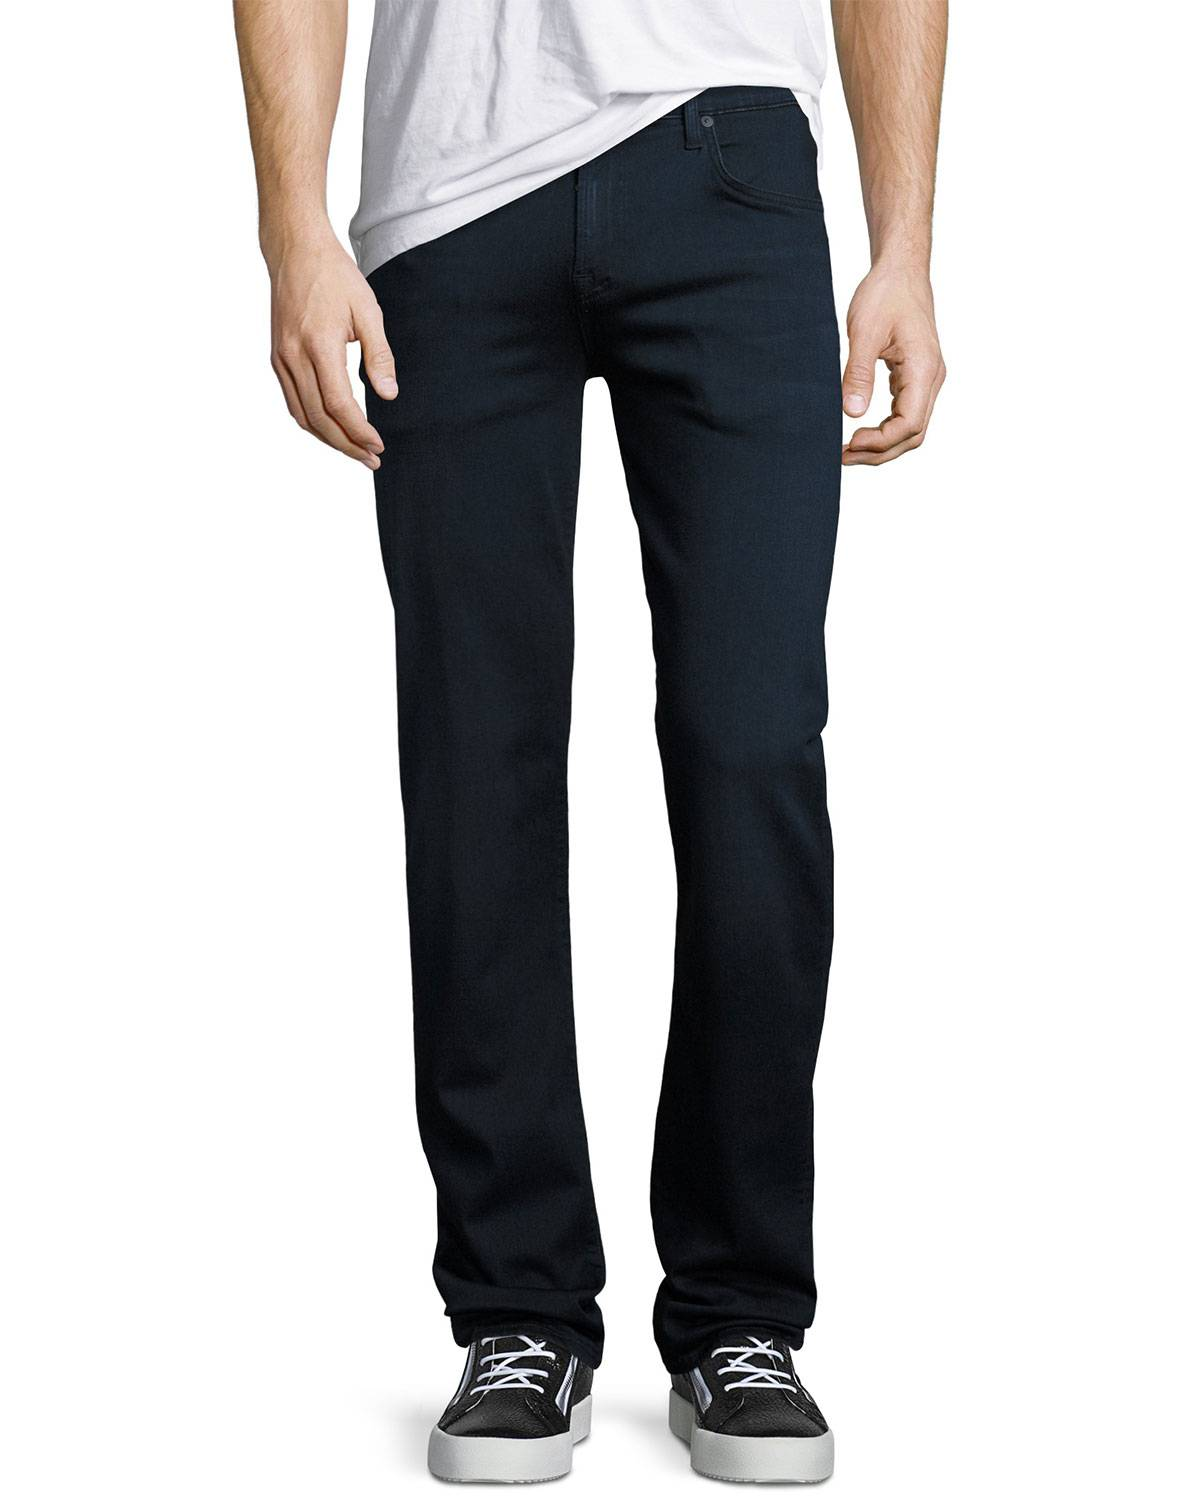 7 For All Mankind Men's Luxe Sport: Slimmy Blue Jeans - Size: 36 X 34